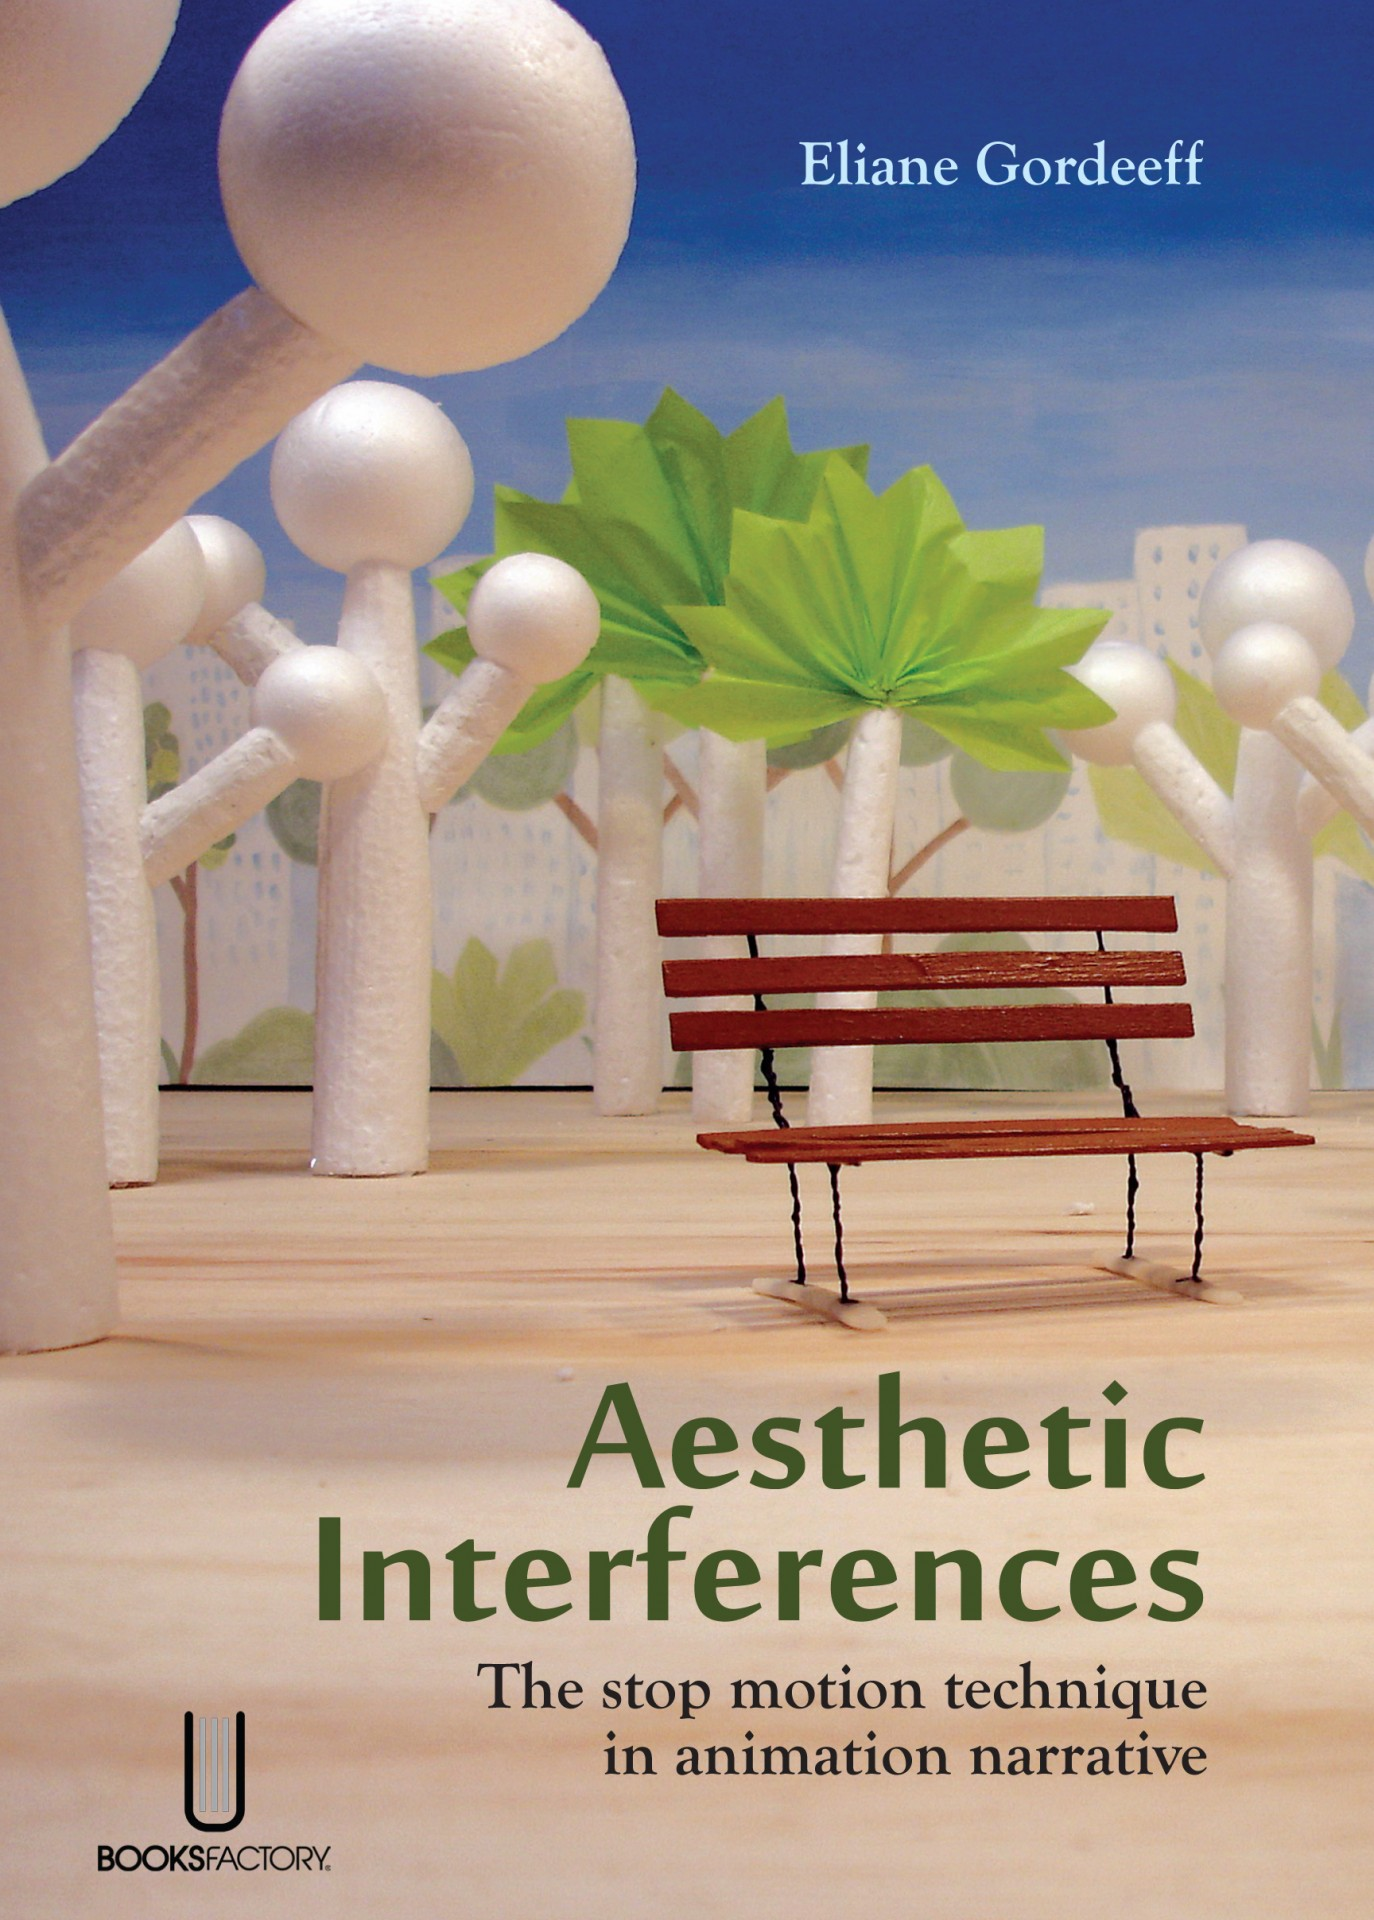 Aesthetic Interferences